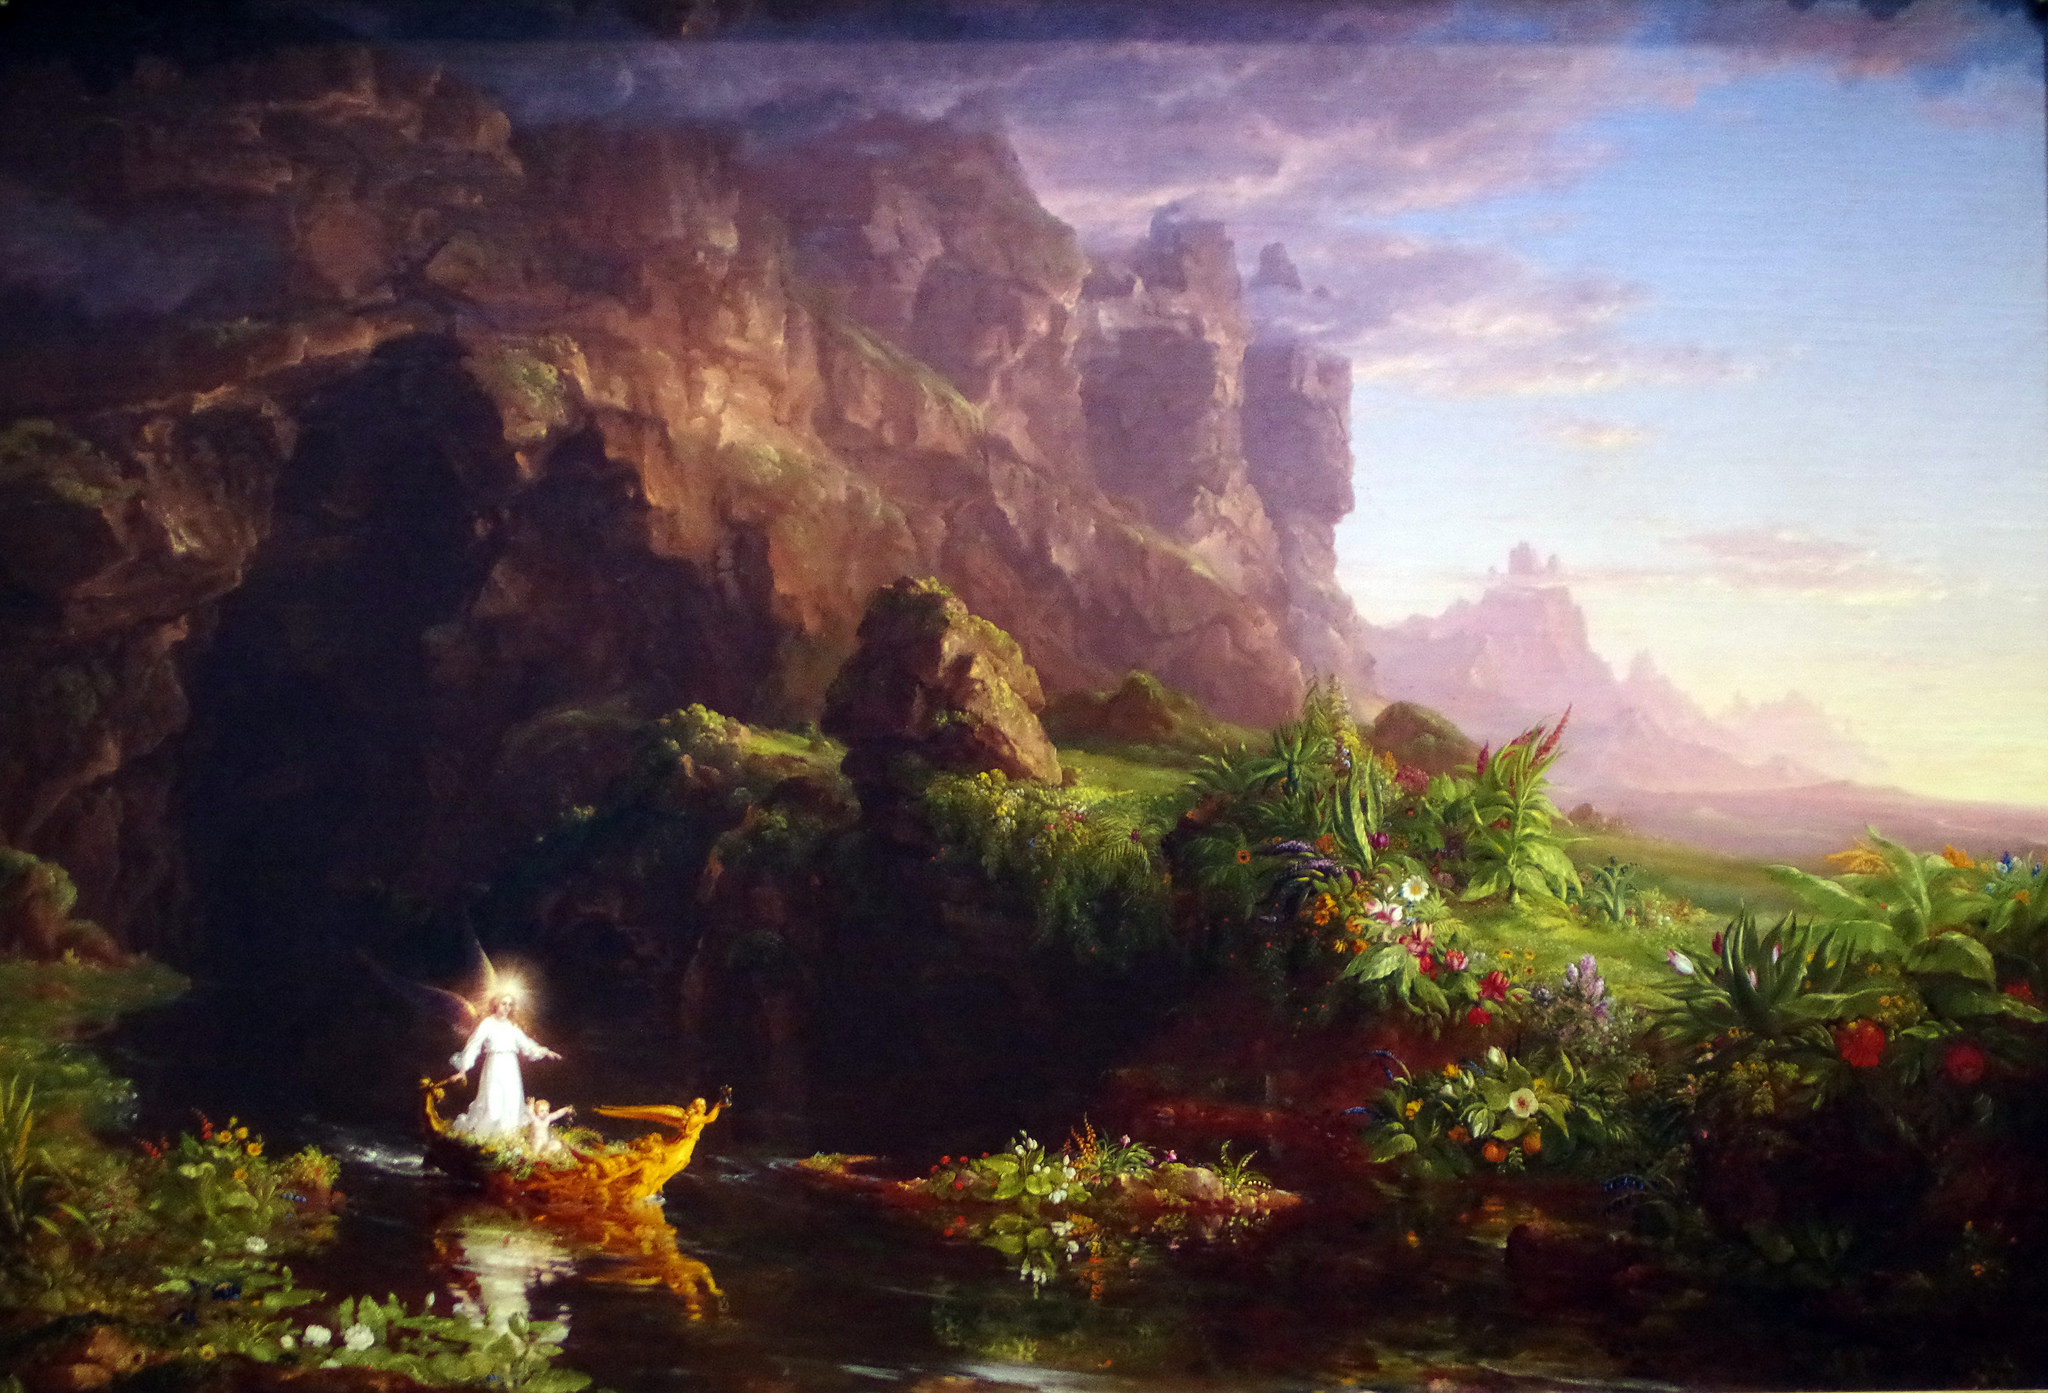 Thomas Cole's The Voyage of Life, Childhood | © Mike Steele/Flickr